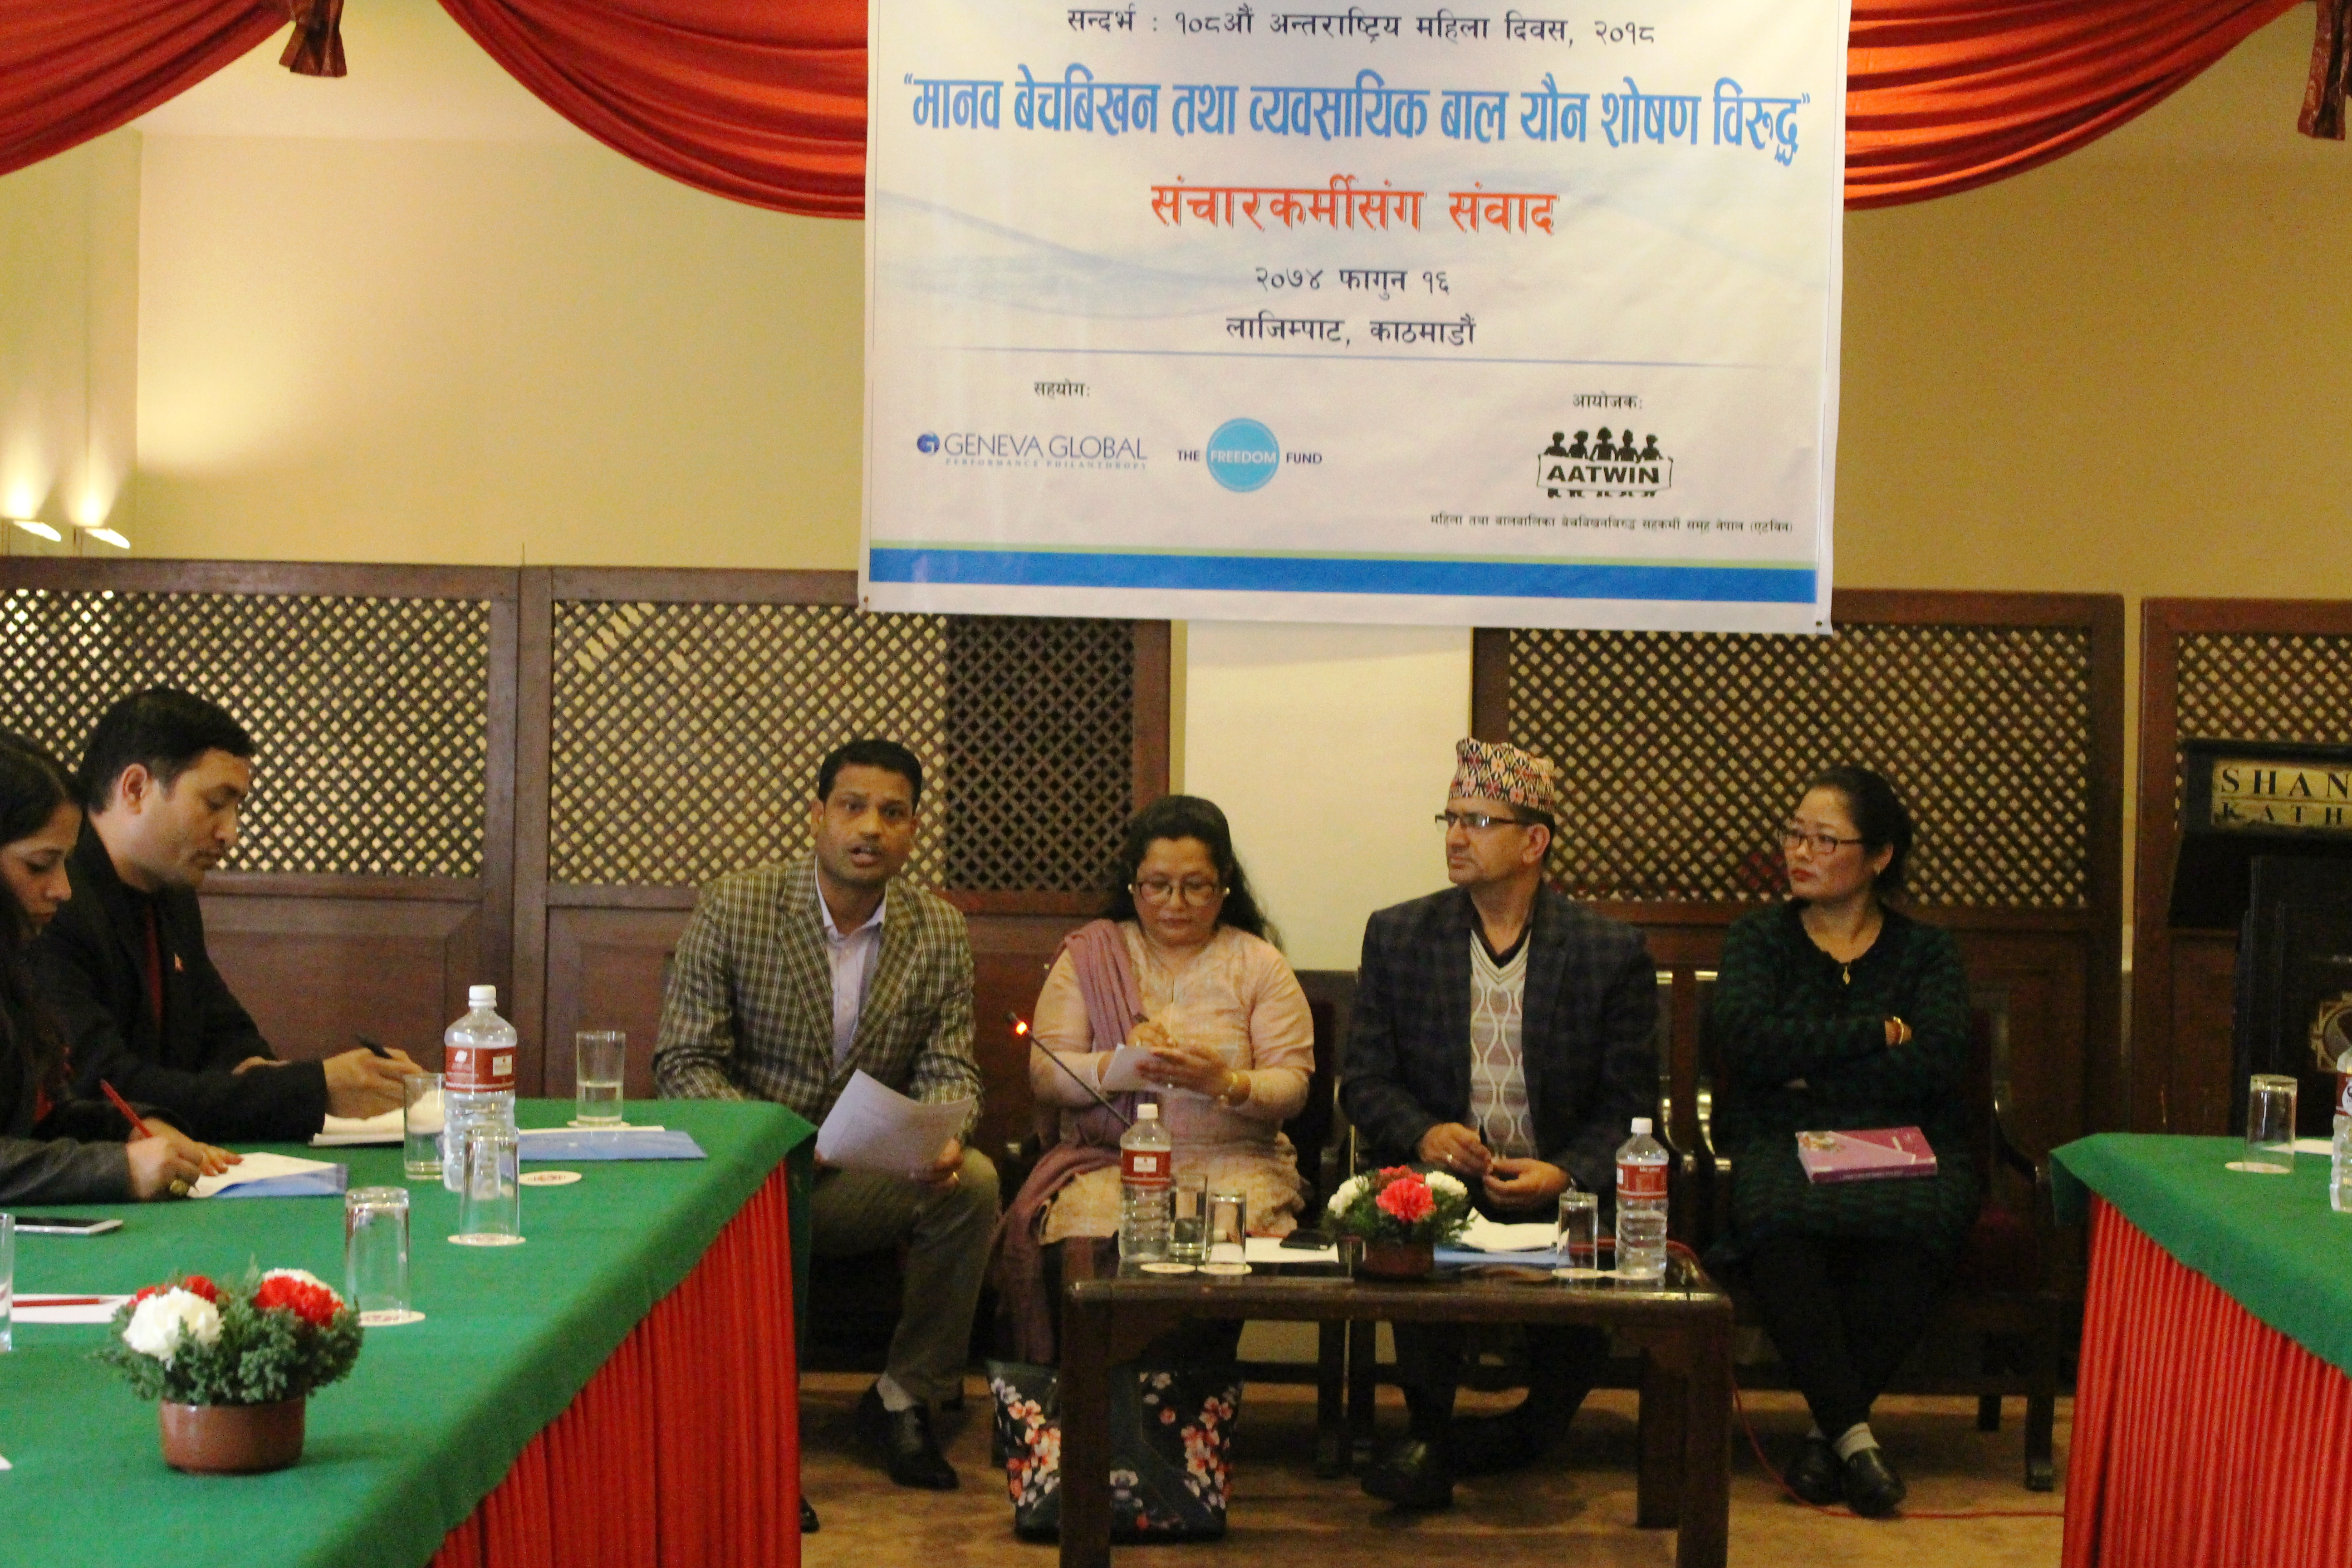 Media personnel and activists at interaction program on u201cHuman Trafficking & Commercial Sexual Exploitation of Children (CSEC) and role of Mediau201d organised on Wednesday. PHOTO: AATWIN